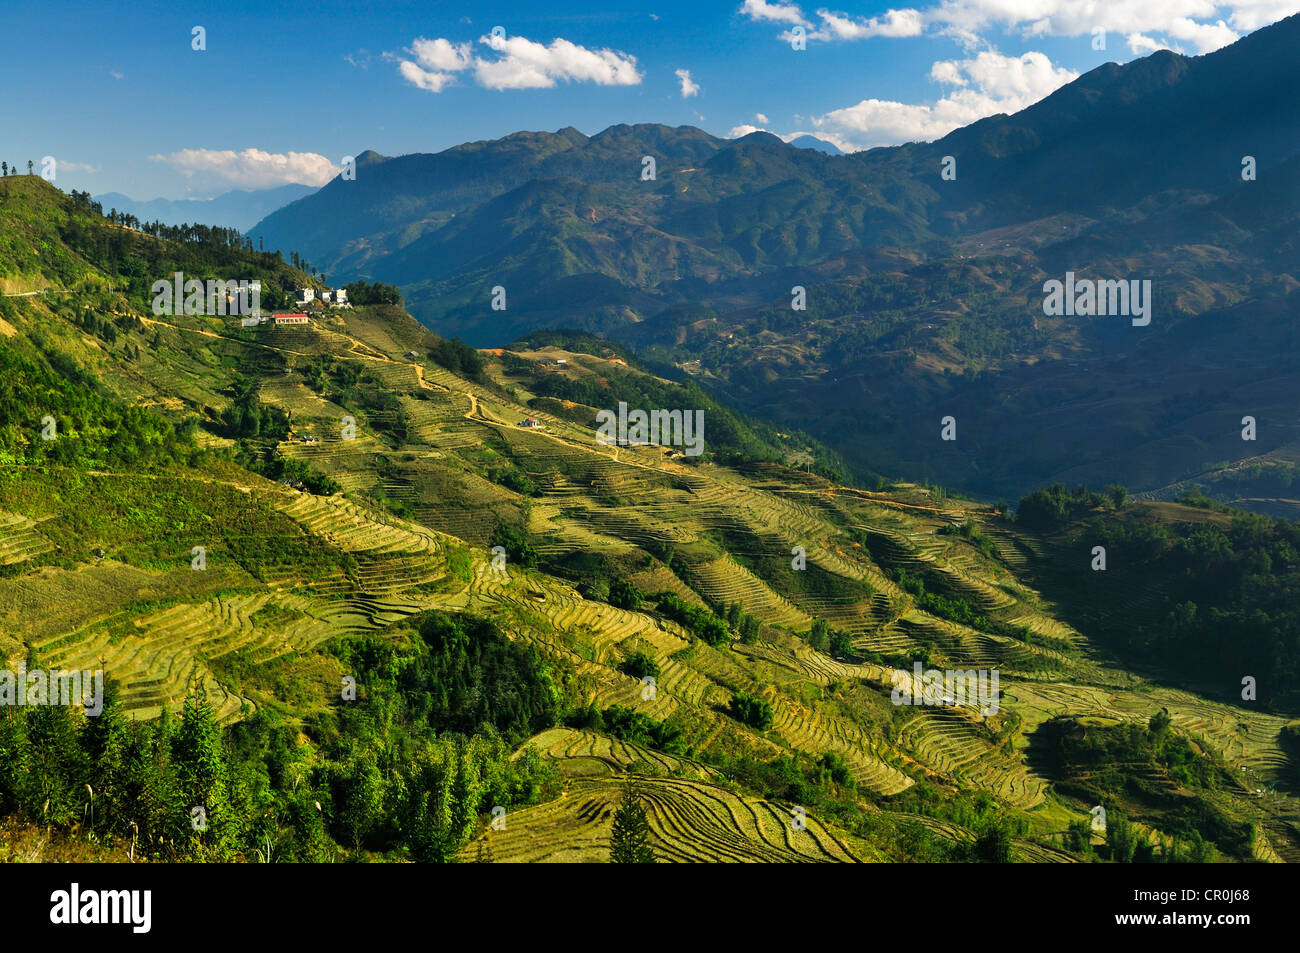 Green rice terraces, rice paddies in Sapa or Sa Pa, Lao Cai province, northern Vietnam, Vietnam, Southeast Asia, Stock Photo